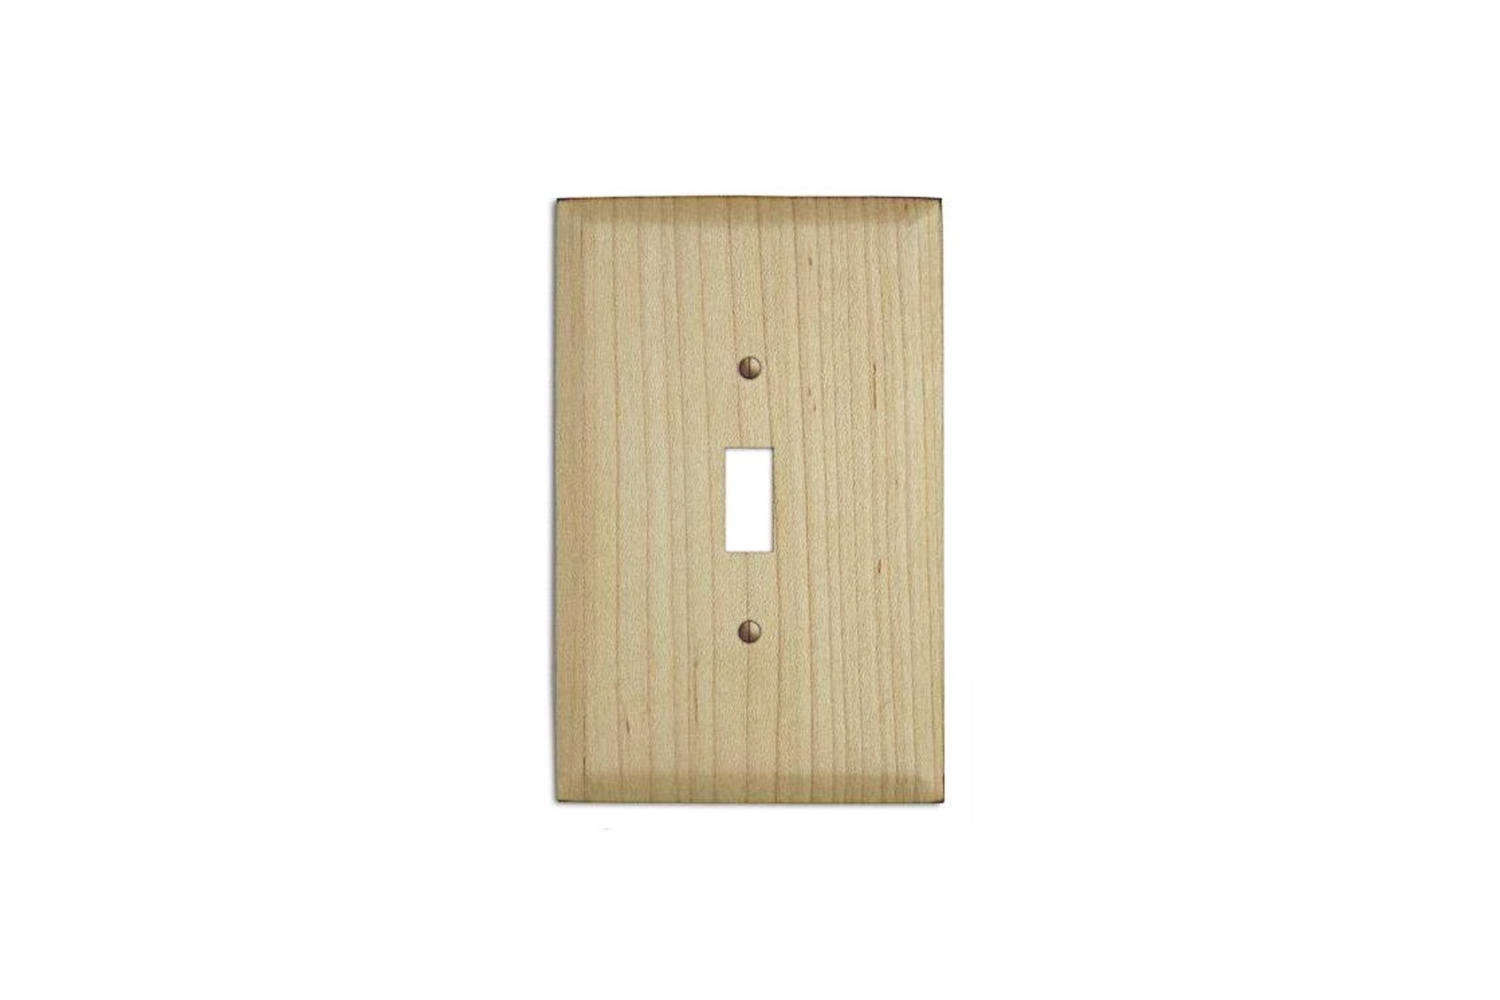 The Maple Wood Cover Plate starts at $9.99 at Wallplates.com.